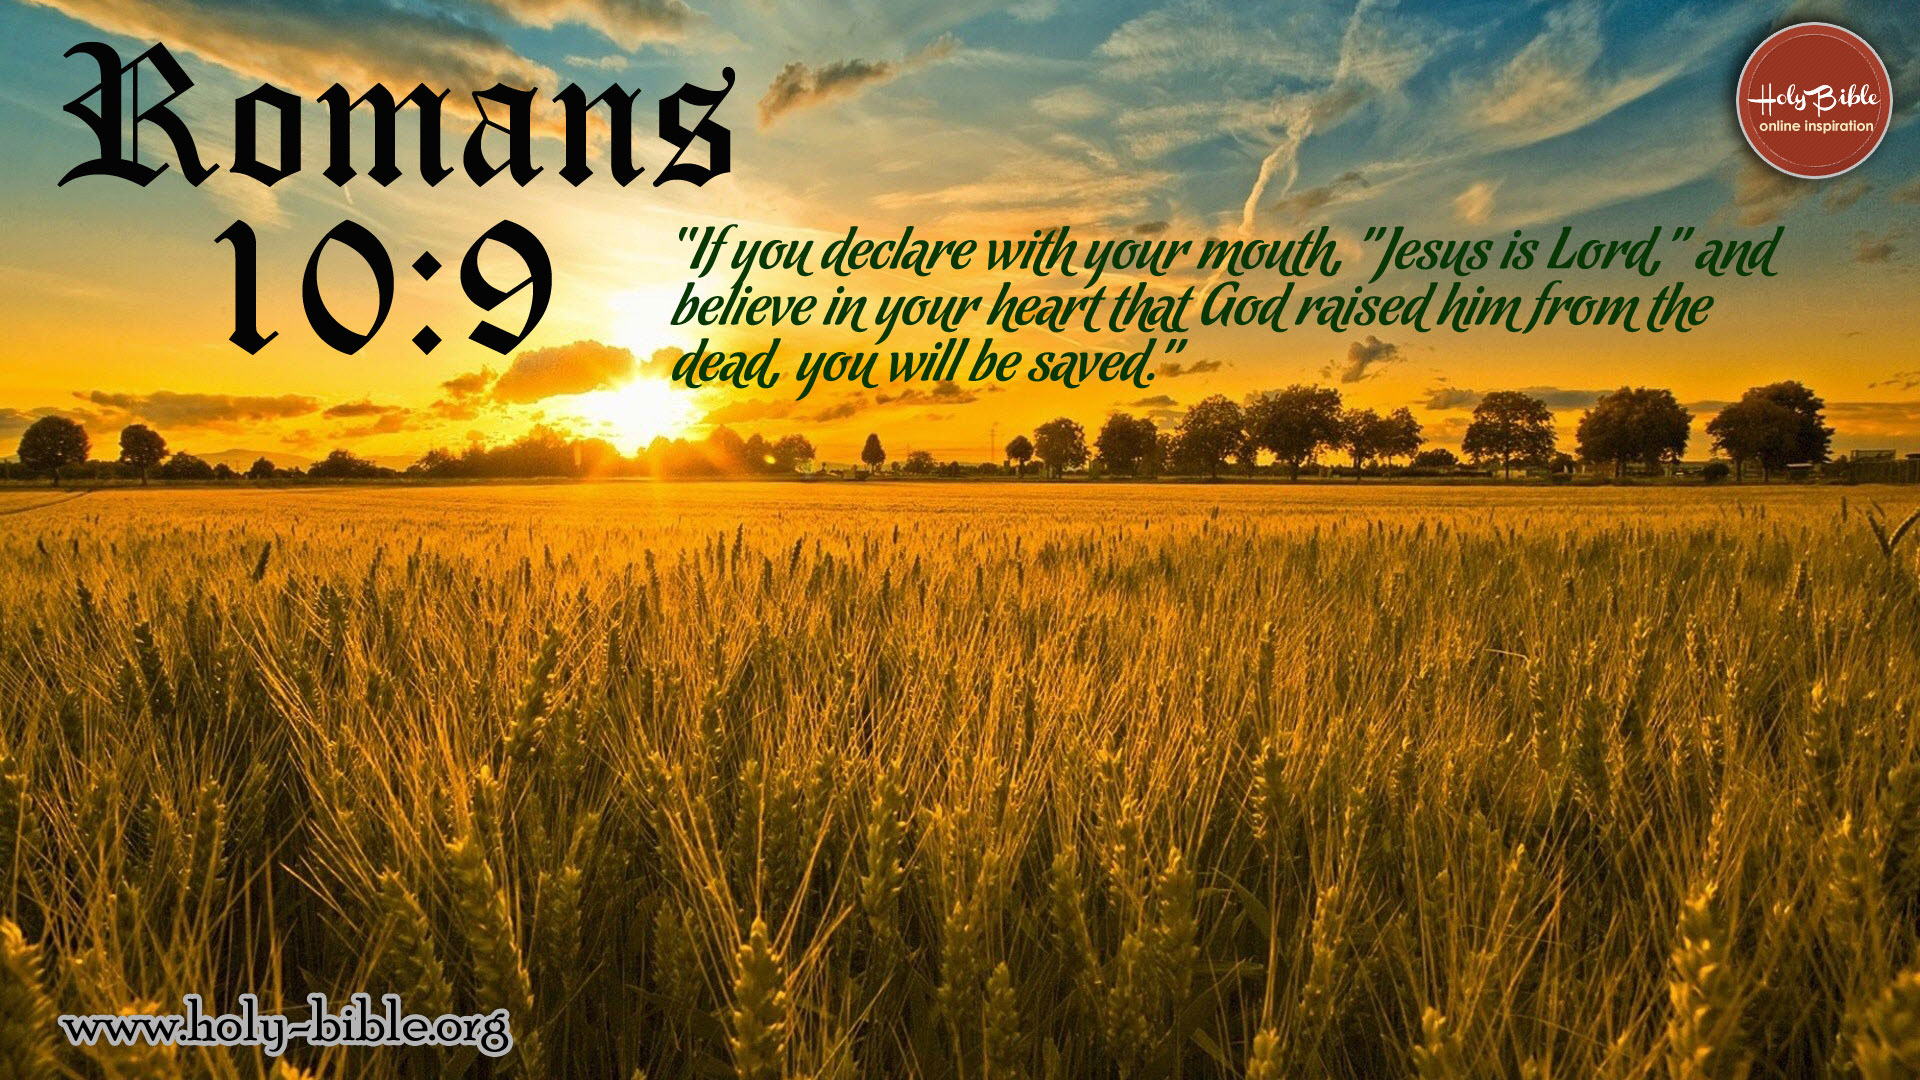 Hd Christian Quotes Wallpapers 1920x1080 Bible Quotes Romans 10 9 Quotesgram